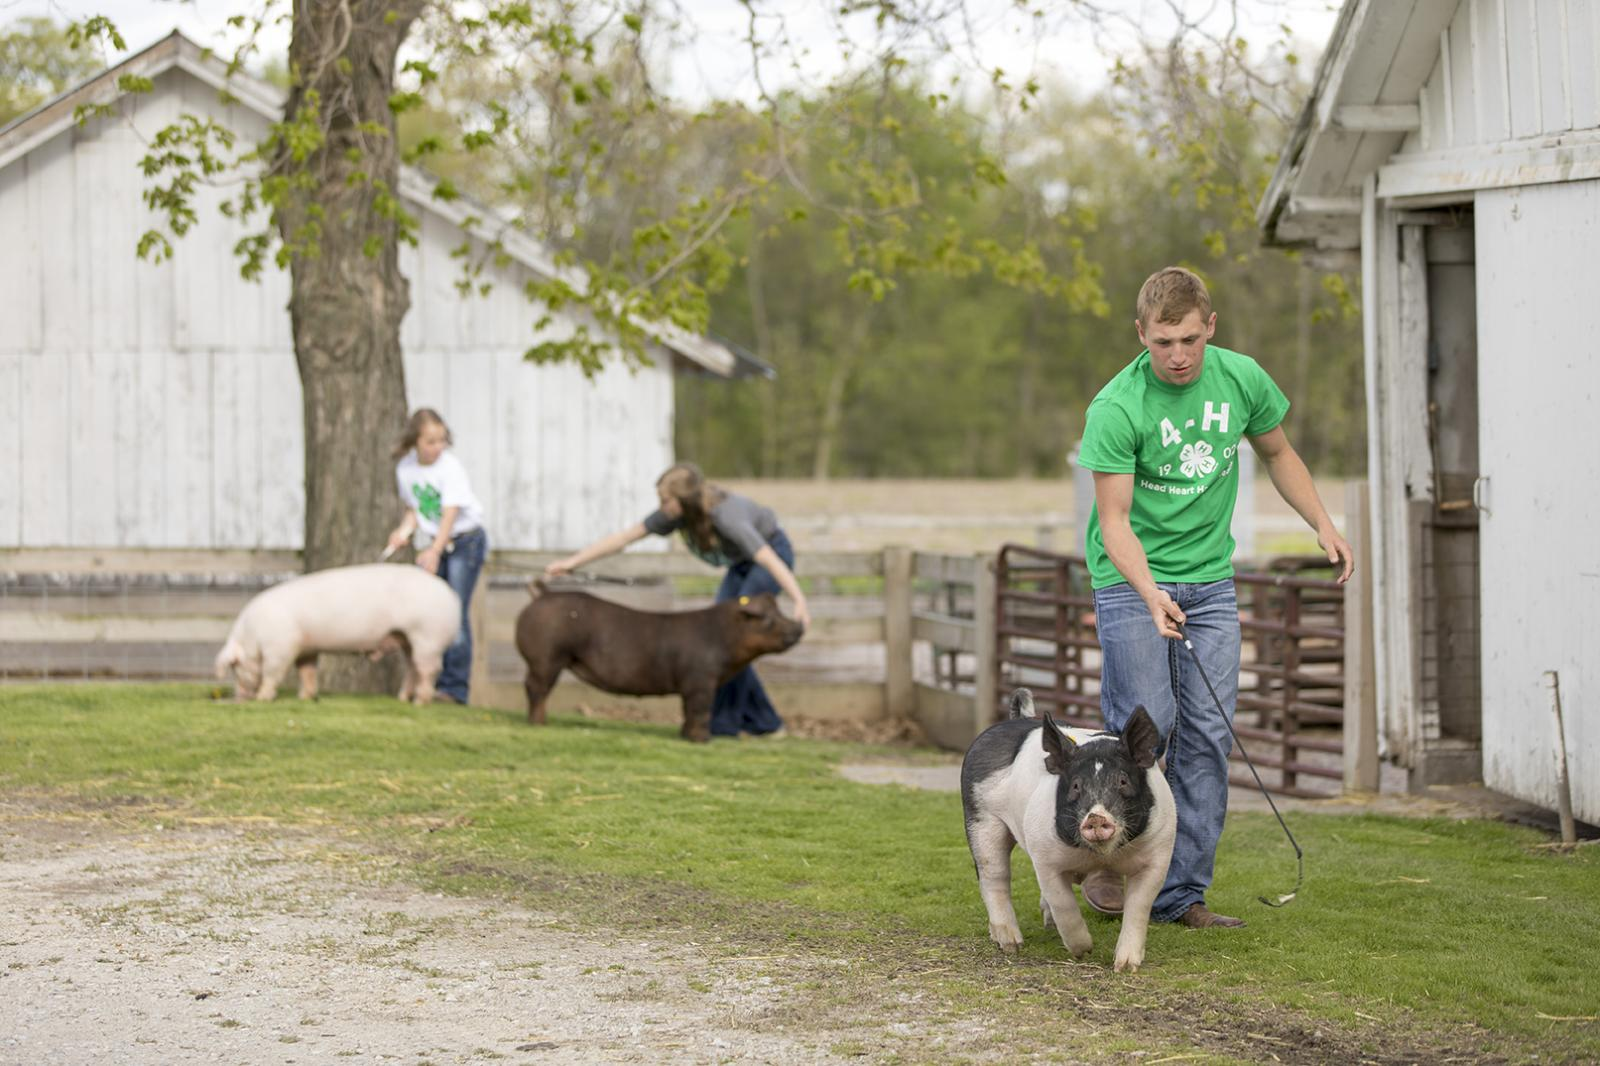 4-H members working with their hogs